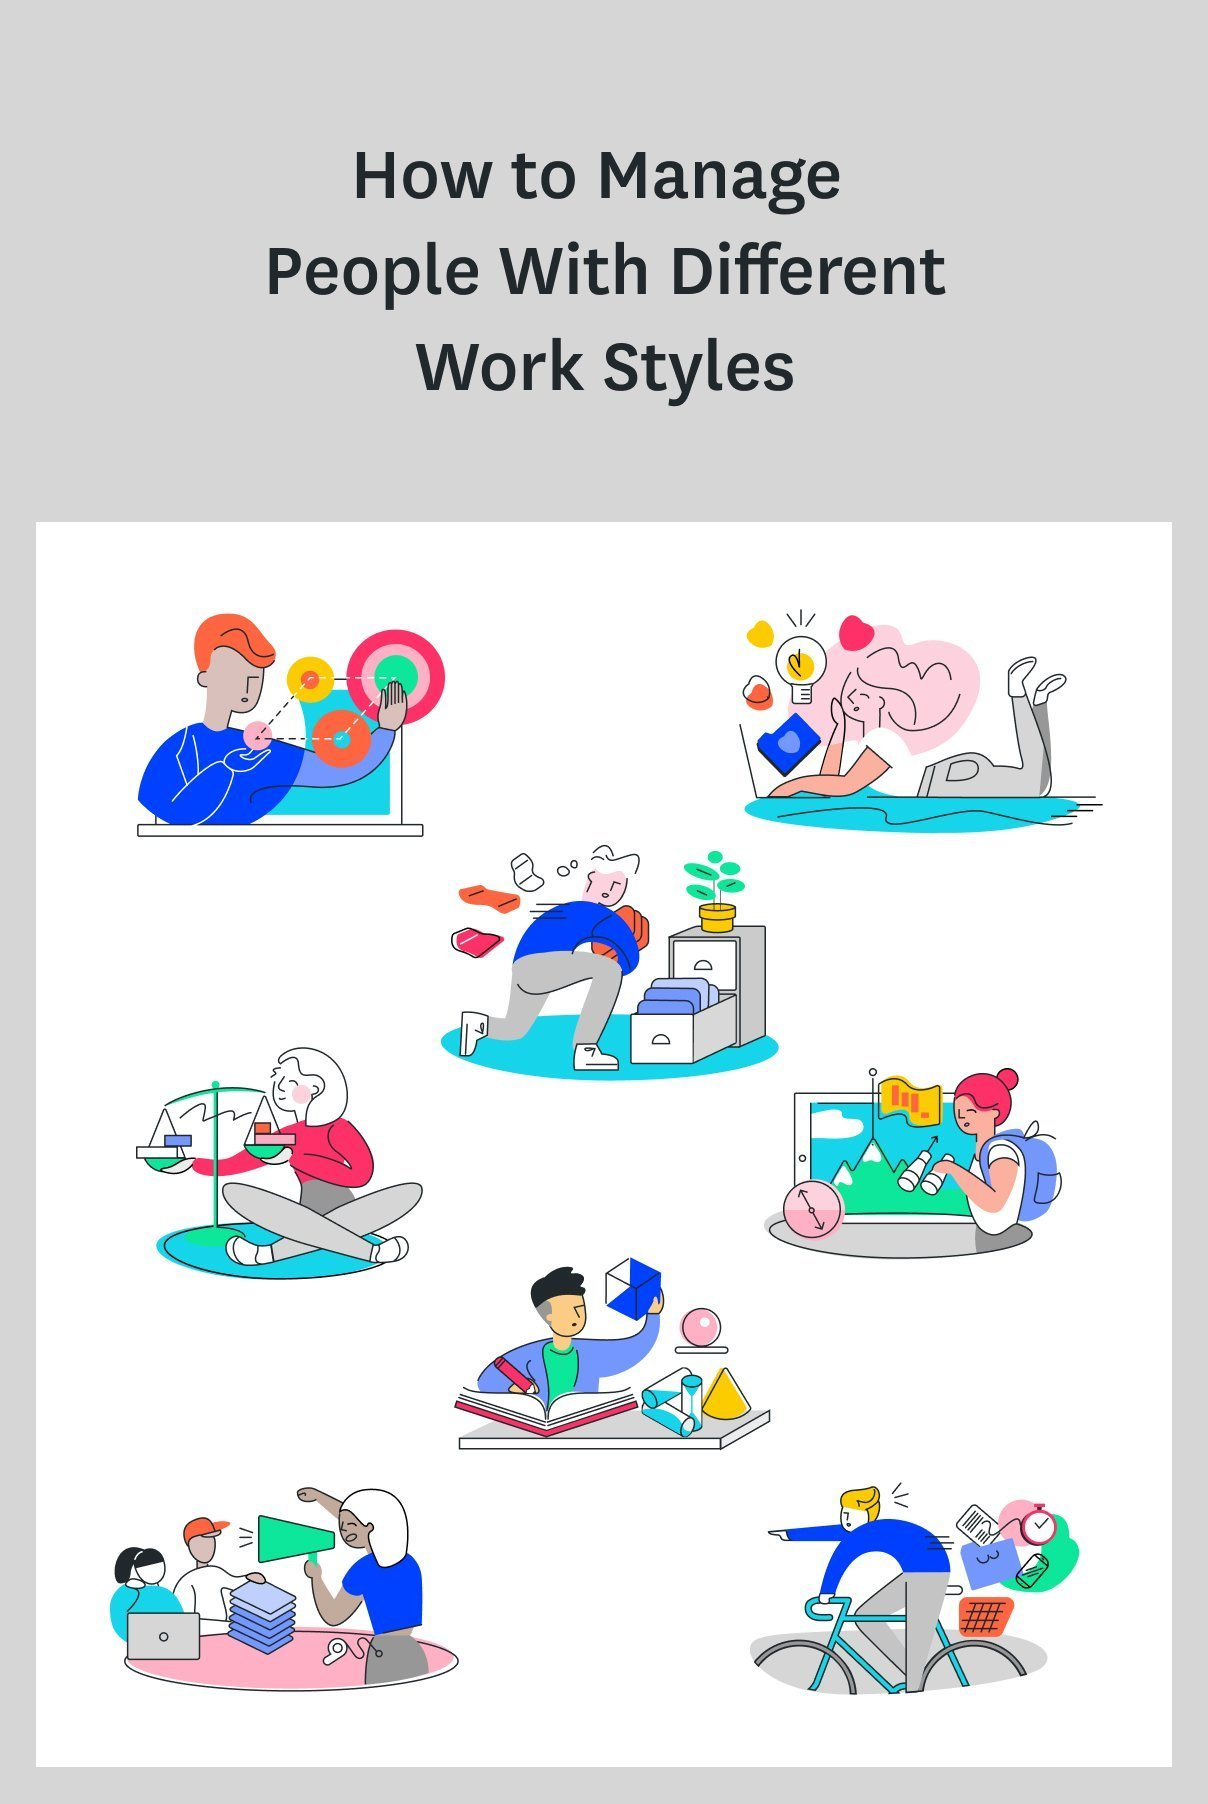 If you're a manager, you've probably noticed that what works for one employee doesn't always work for someone else. The fact is: your team members have different work styles, and as a manager, it's your job to cater to each style and figure out the best way to motivate and influence each team member. Get tips on managing people with different work styles in this post. #managertips